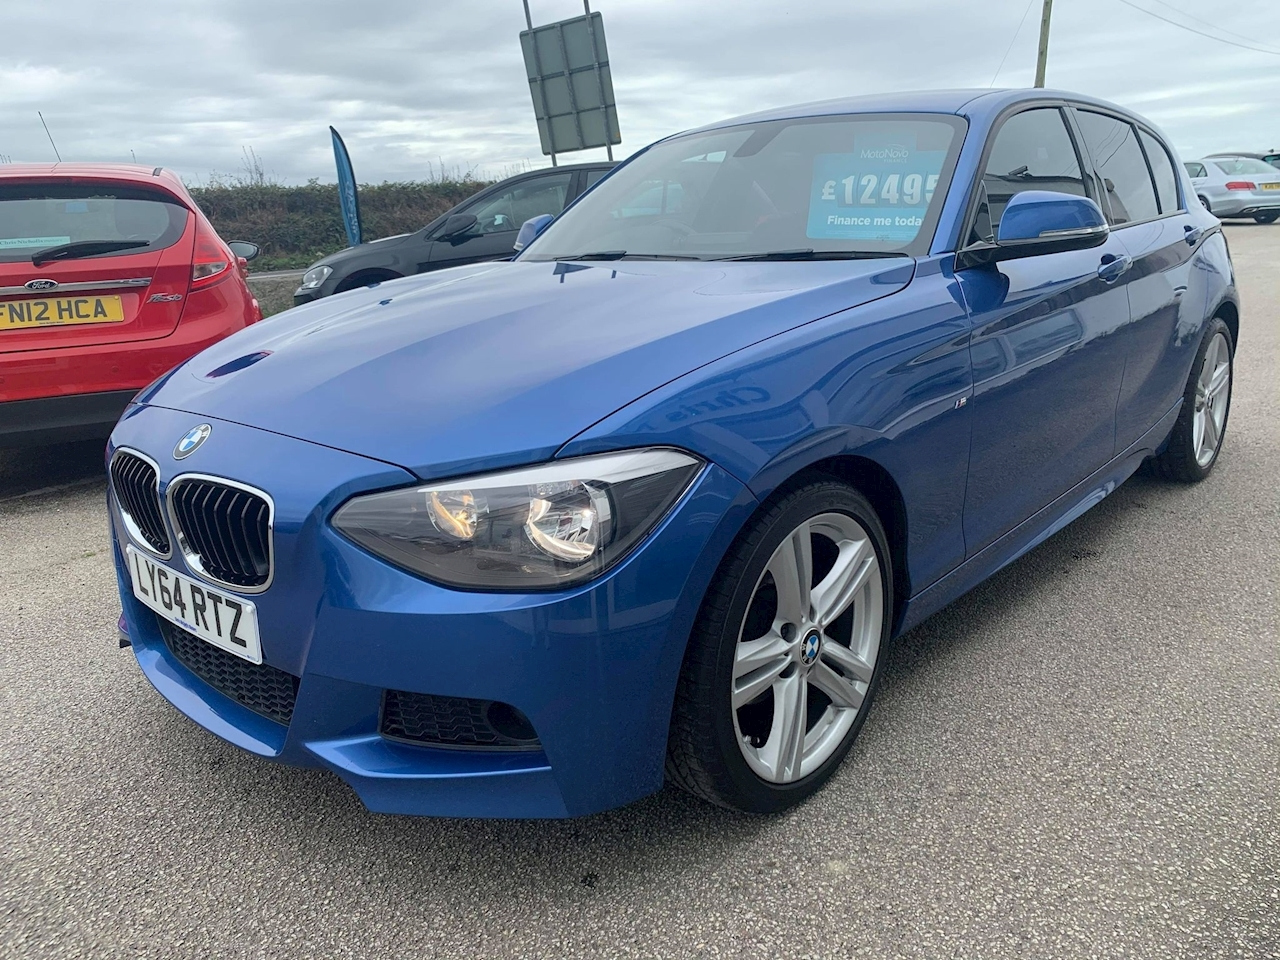 BMW 1 Series 116d M Sport 5 door 5 Door Sports Hatch 2.0 Automatic Diesel